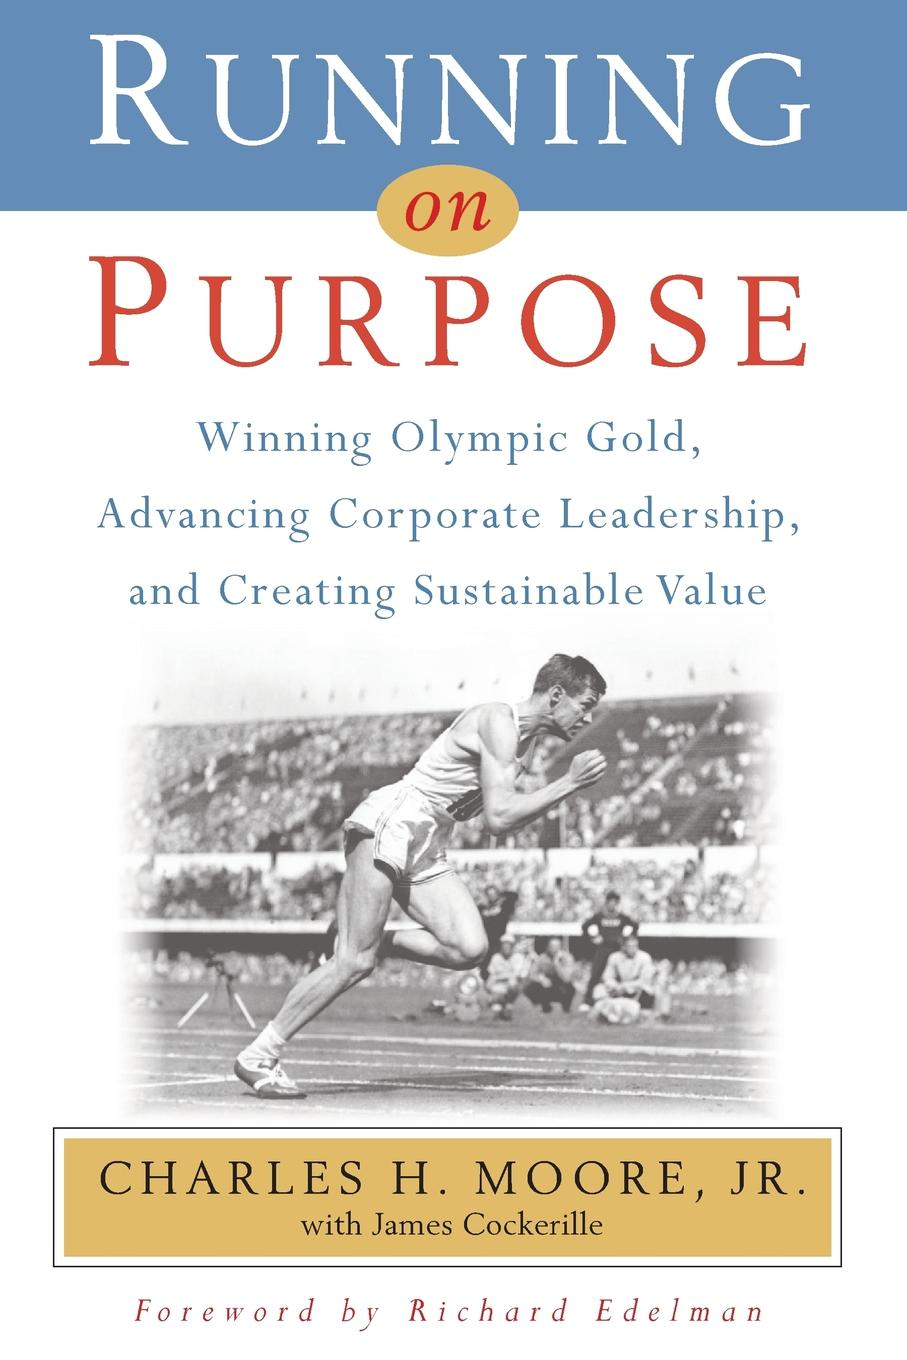 Running on Purpose. Winning Olympic Gold, Advancing Corporate Leadership and Creating Sustainable Value Charlie Moore never broke his stride after winning an Olympic gold...